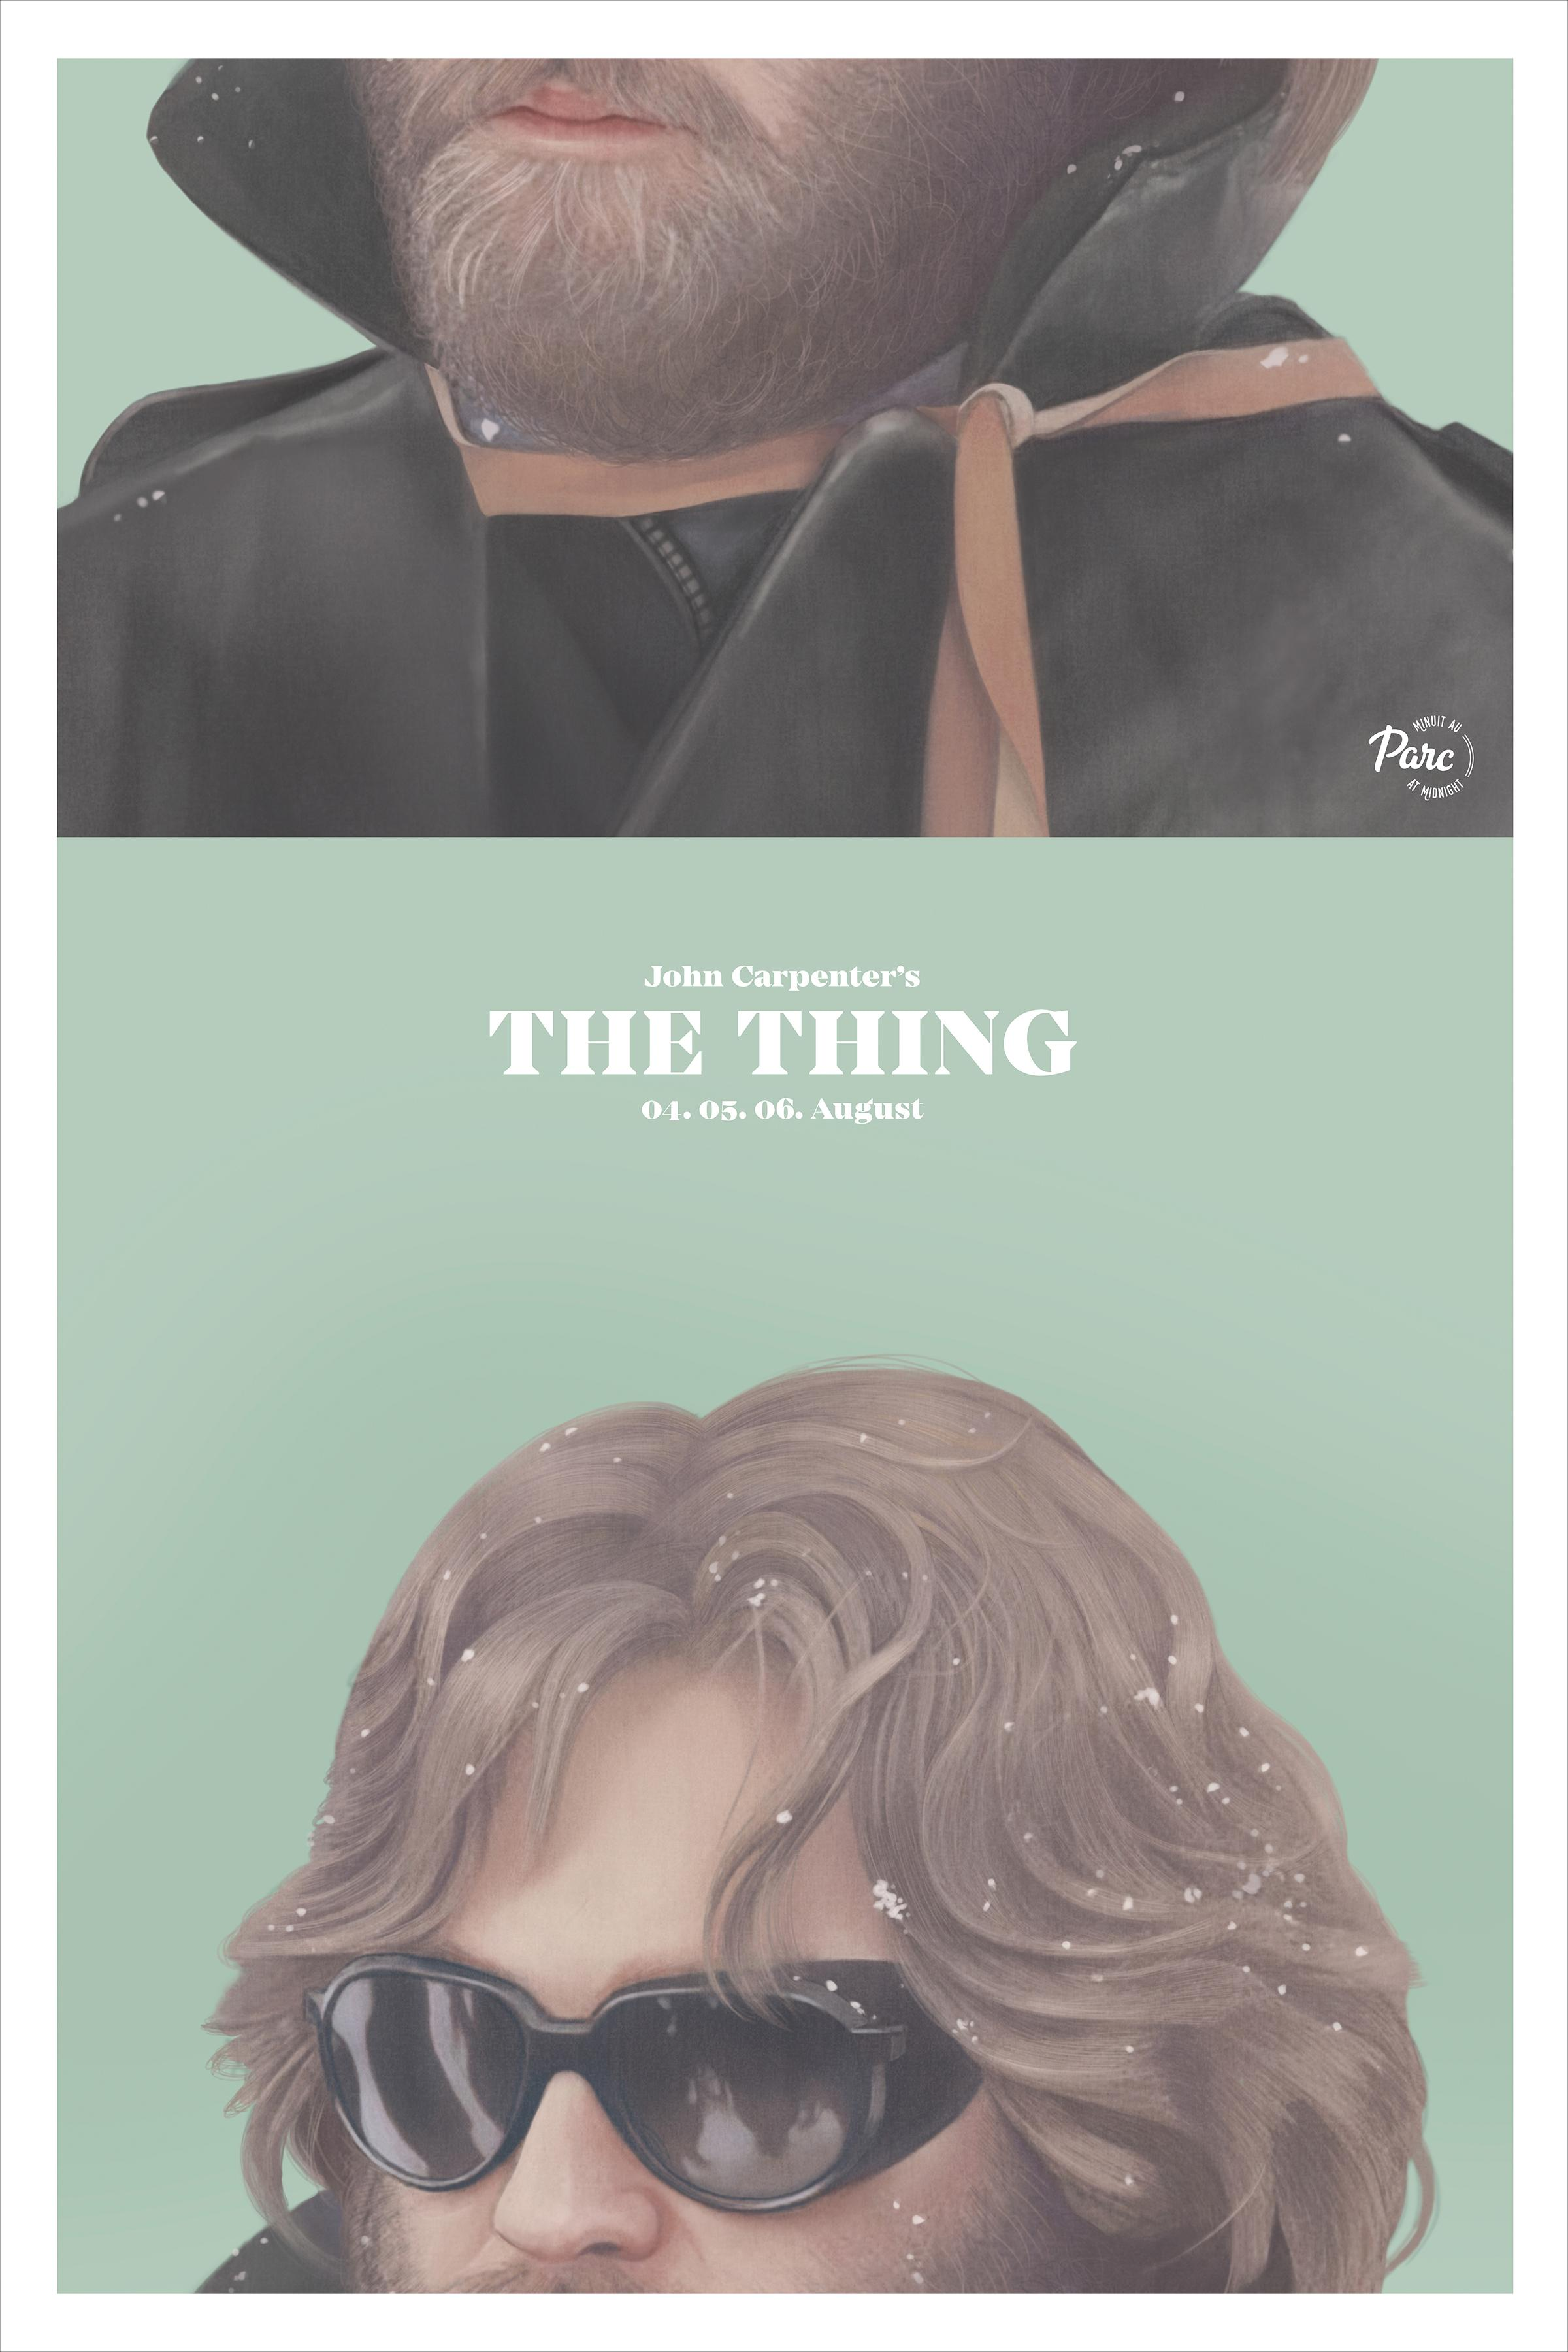 Cinema du Parc Outdoor Ad - The Thing